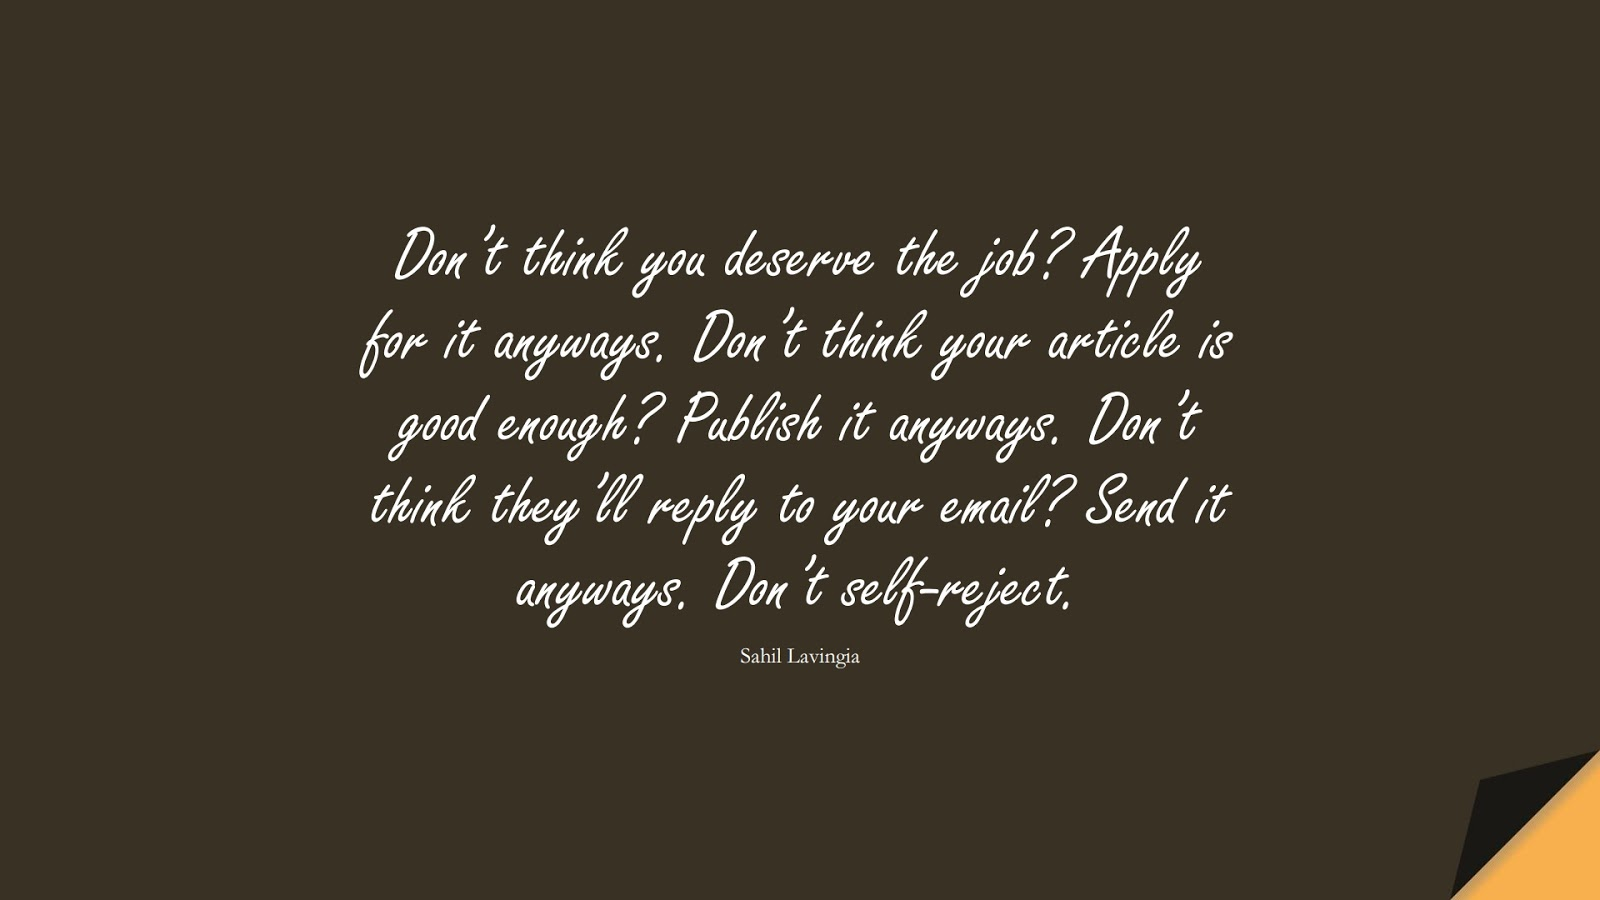 Don't think you deserve the job? Apply for it anyways. Don't think your article is good enough? Publish it anyways. Don't think they'll reply to your email? Send it anyways. Don't self-reject. (Sahil Lavingia);  #EncouragingQuotes